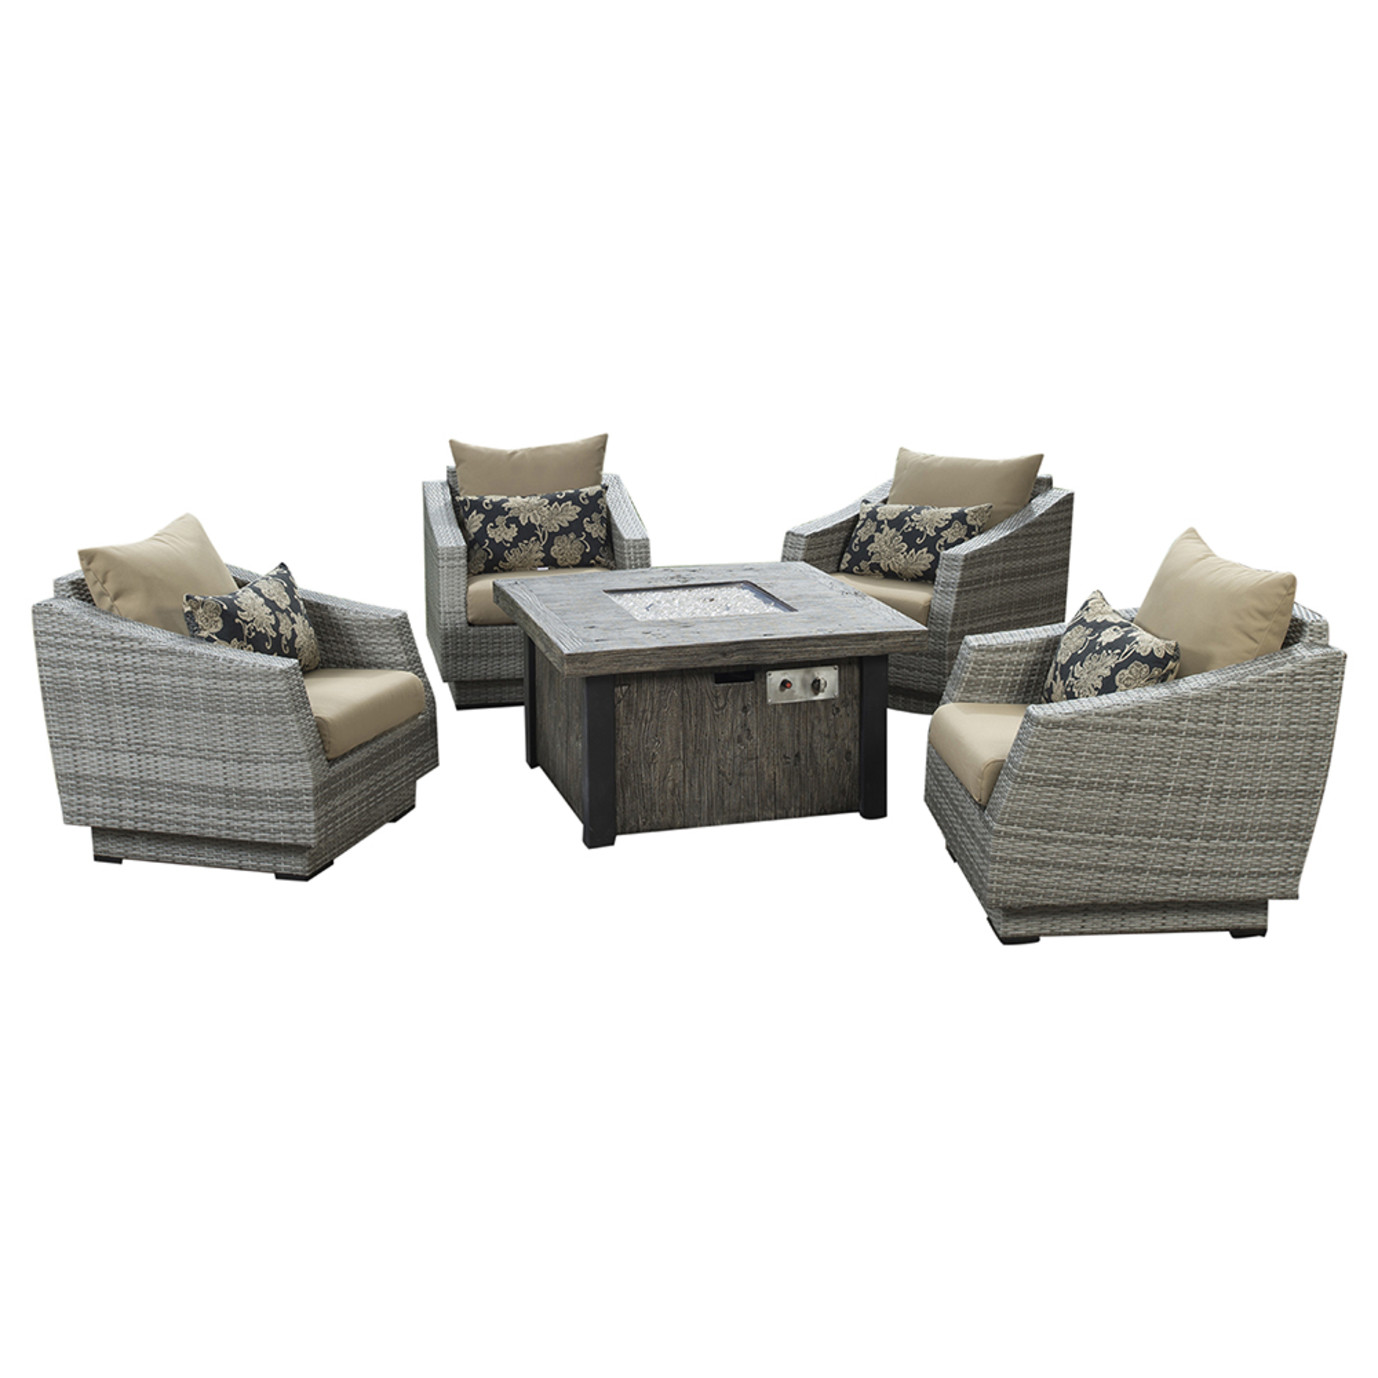 Cannes 5pc Fire Chat Set - Delano Beige